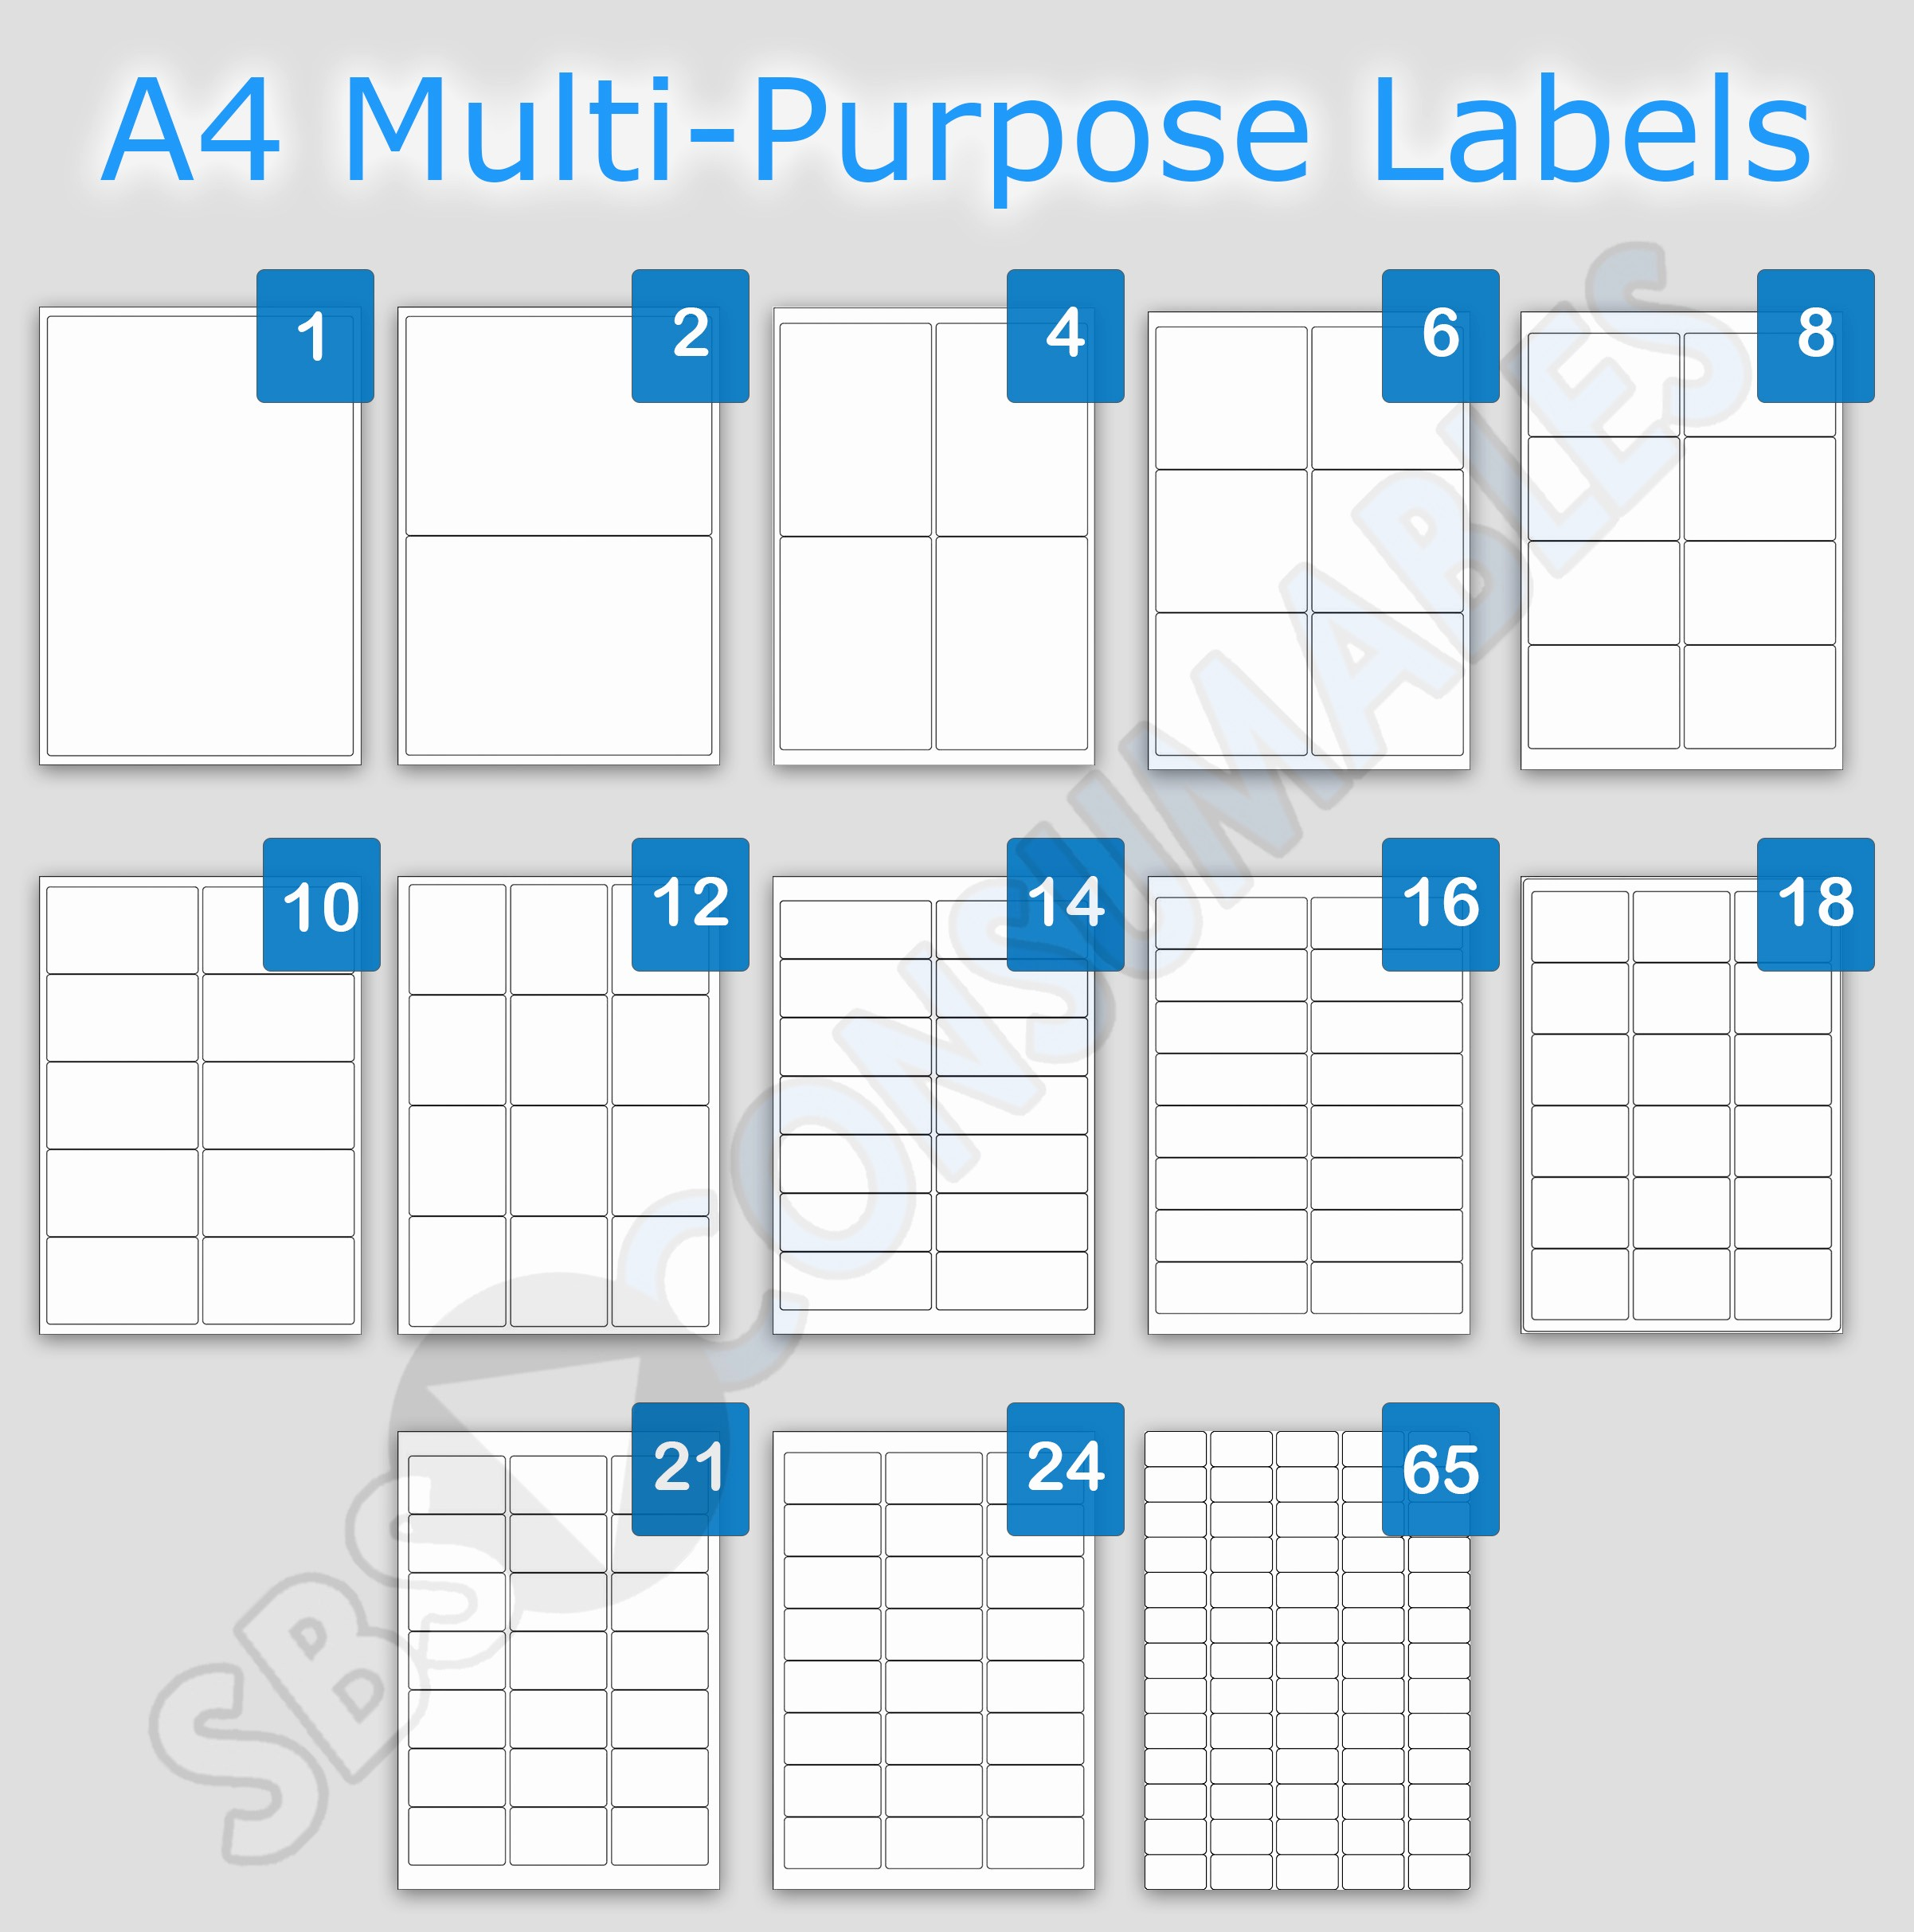 10 Per Sheet Label Template Best Of Label Template 65 Per Sheet